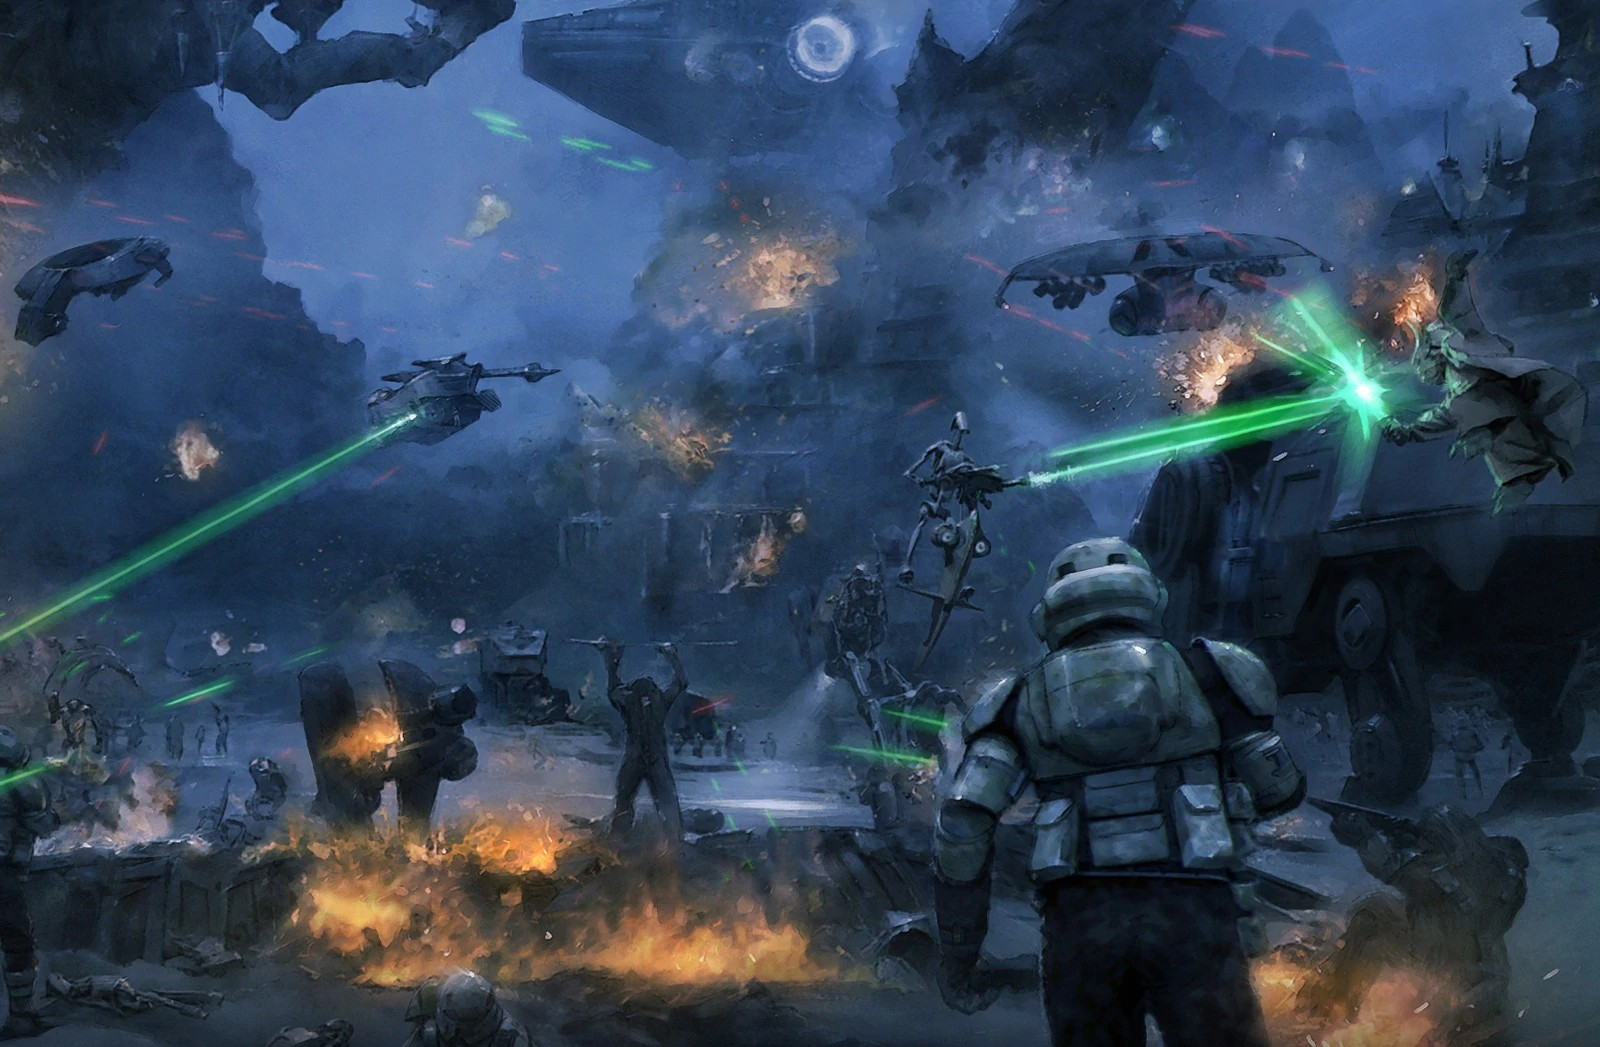 Archivo:CwBattle of Kashyyyk.jpg